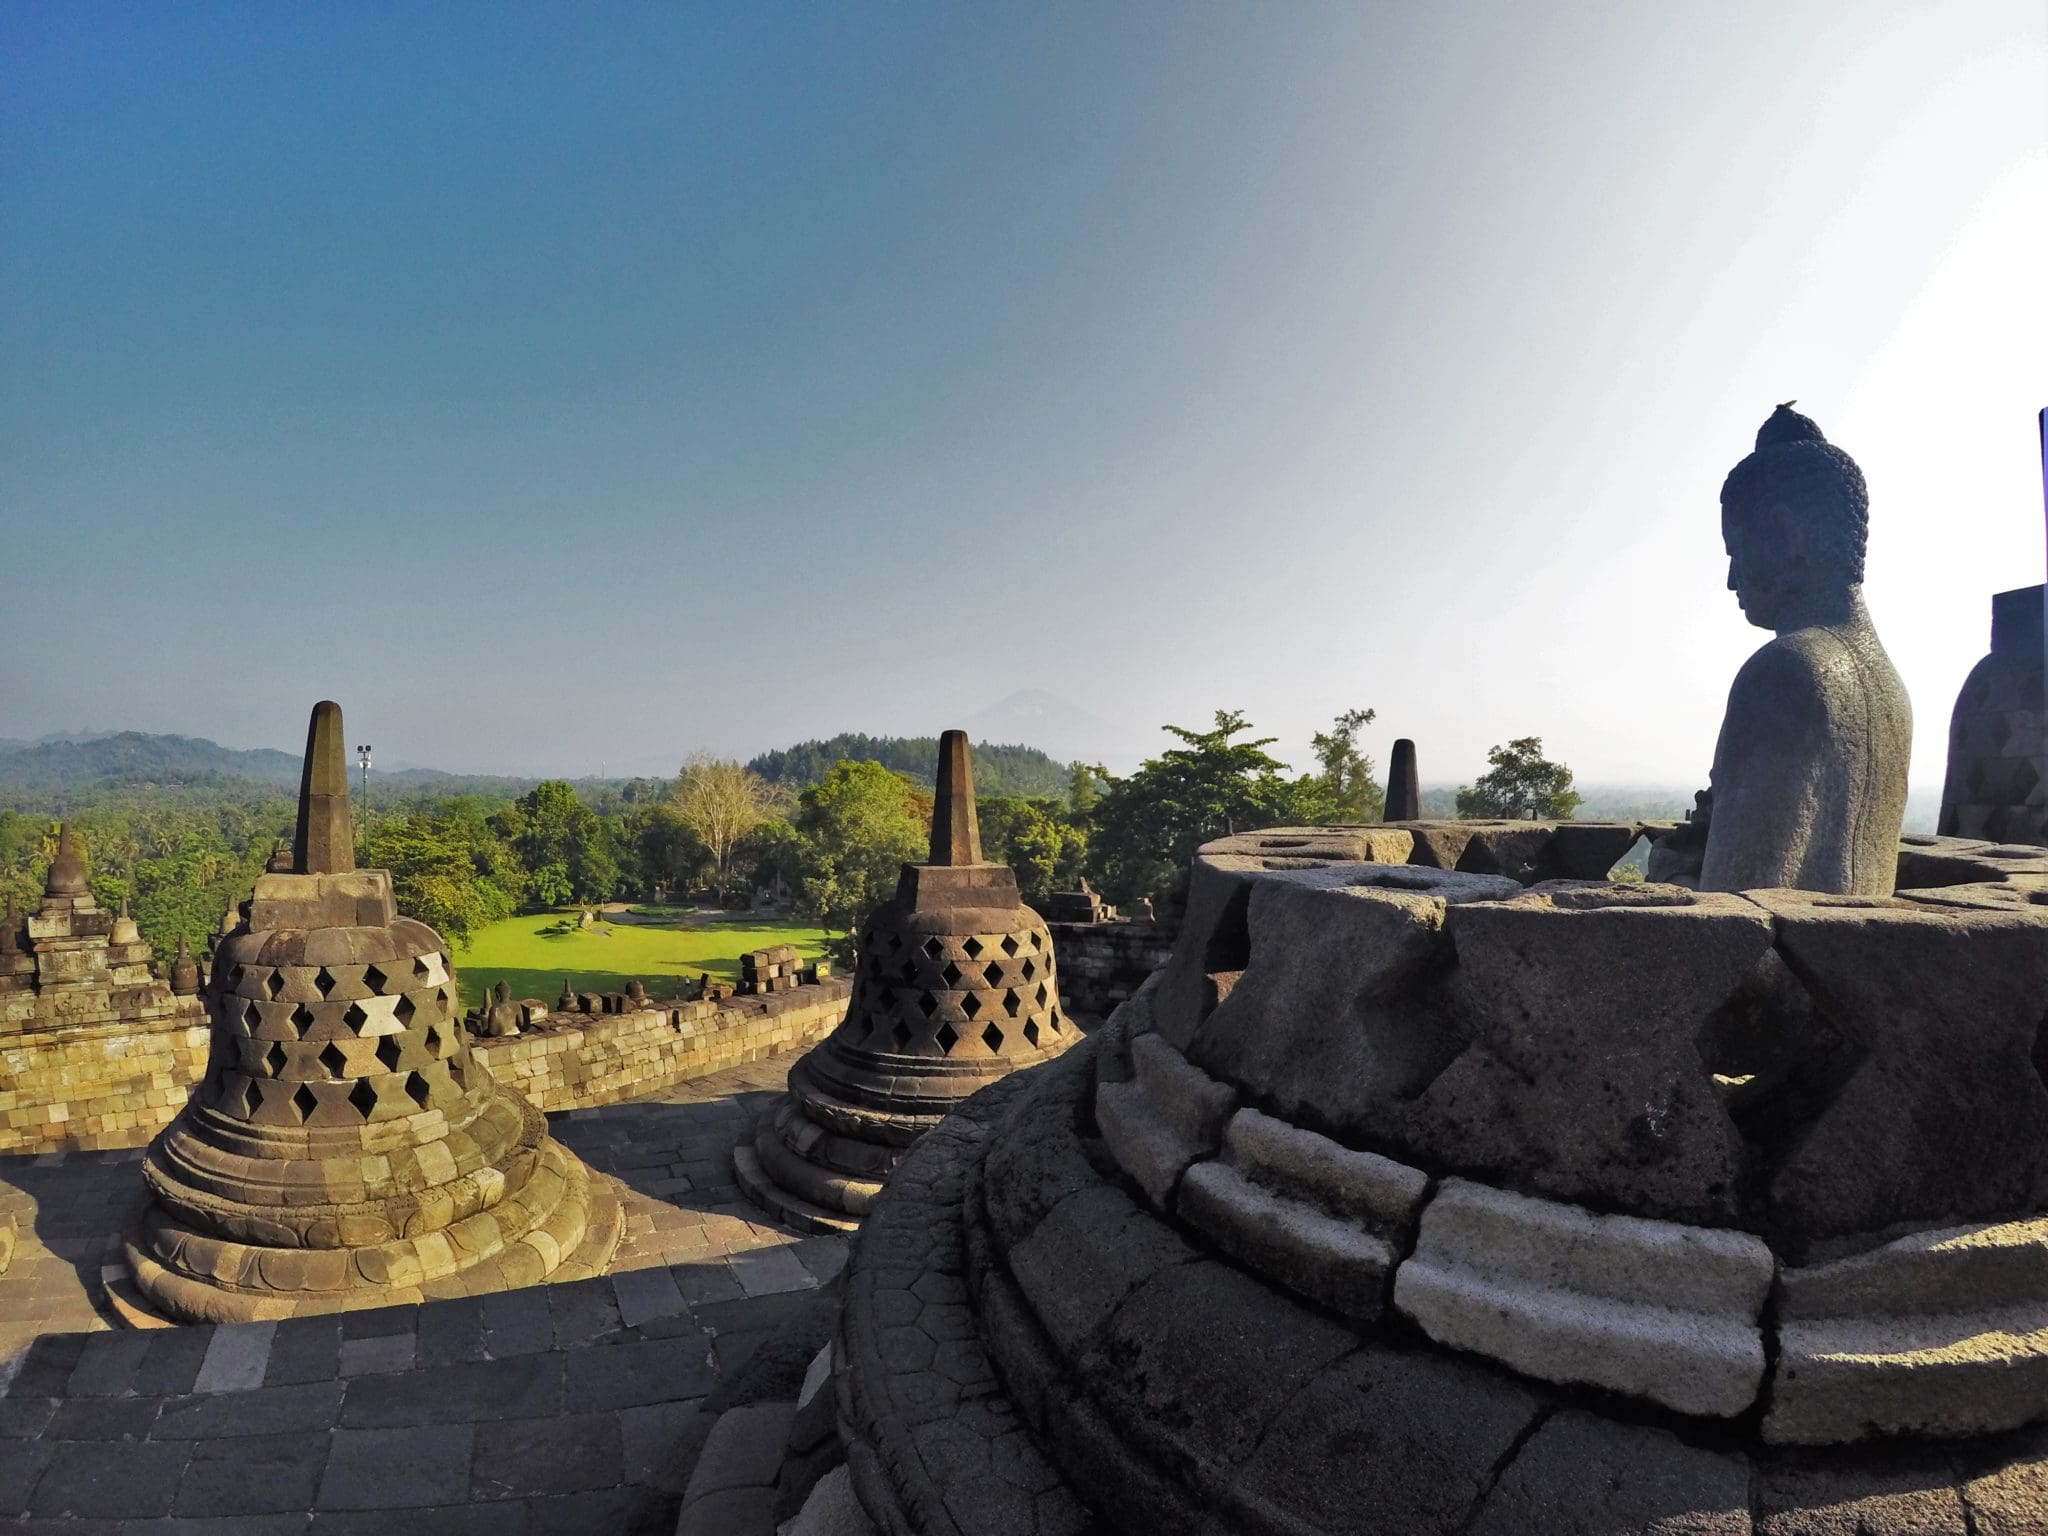 East Java   Republic of Indonesia   Complete conduct to    Bali Tourist Destinations: 93 YOGYAKARTA BACKPACKERS